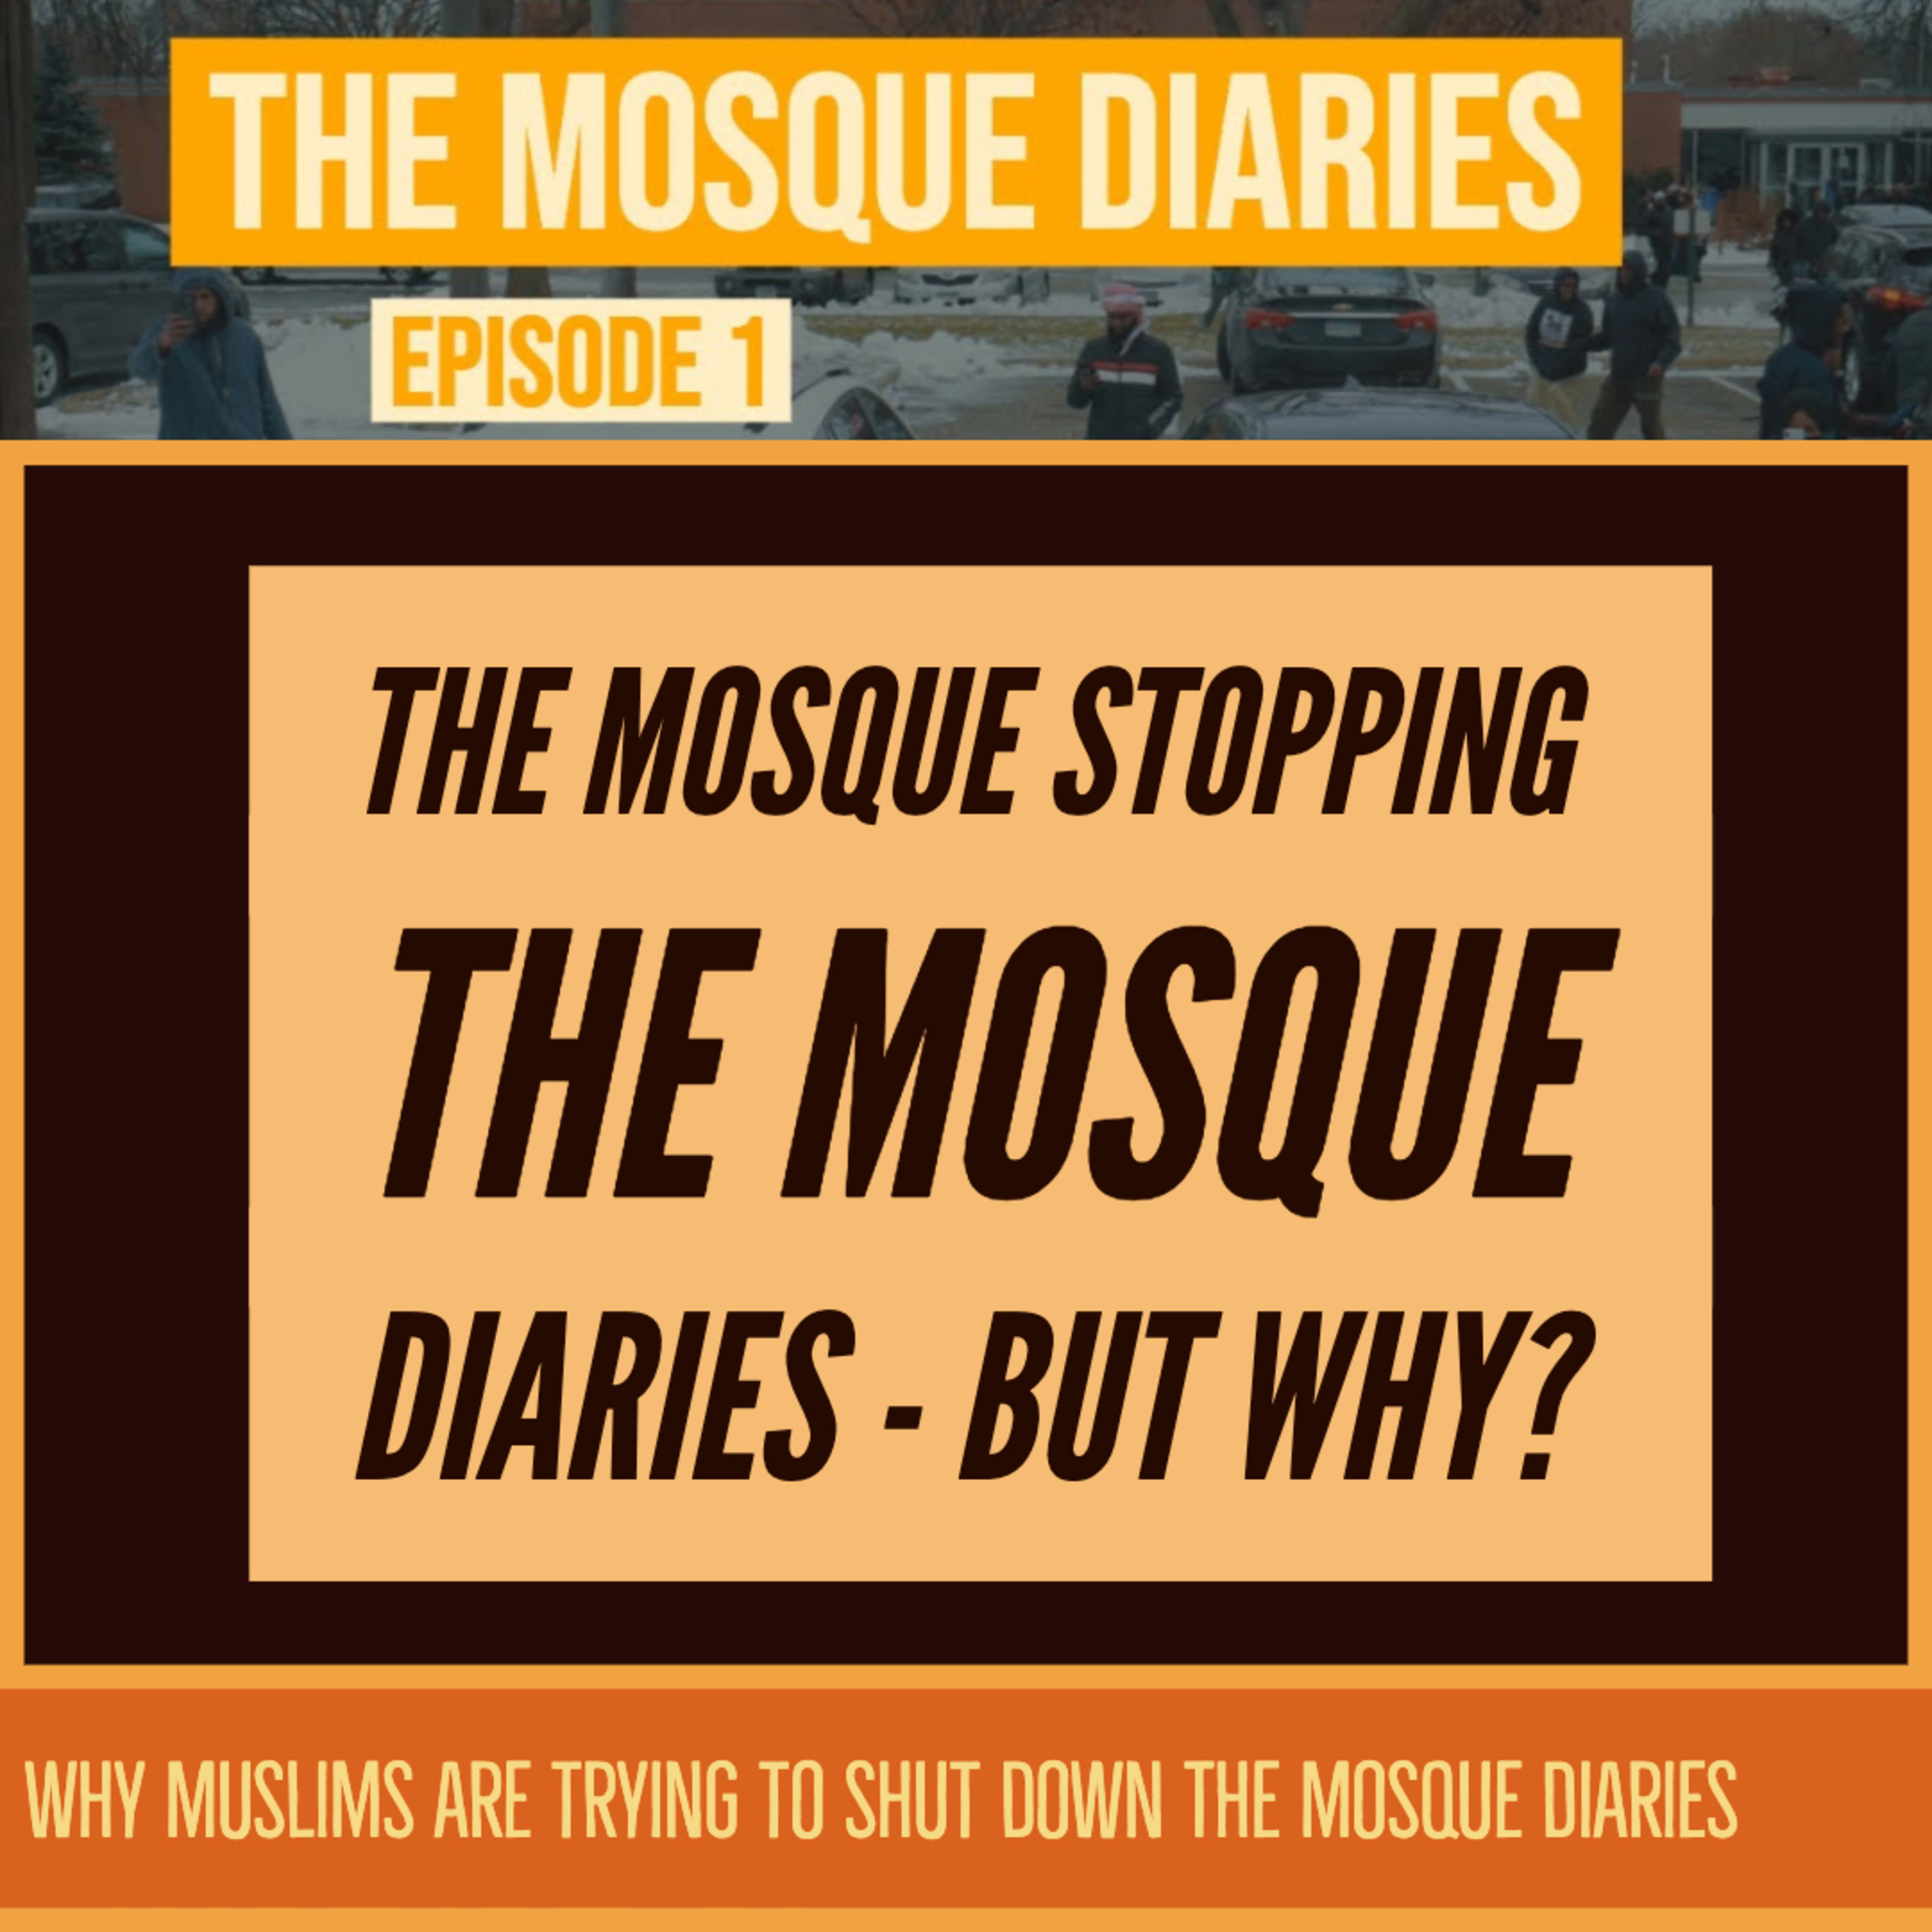 Ep. 6: The Mosque Stopping The Mosque Diaries - But Why?